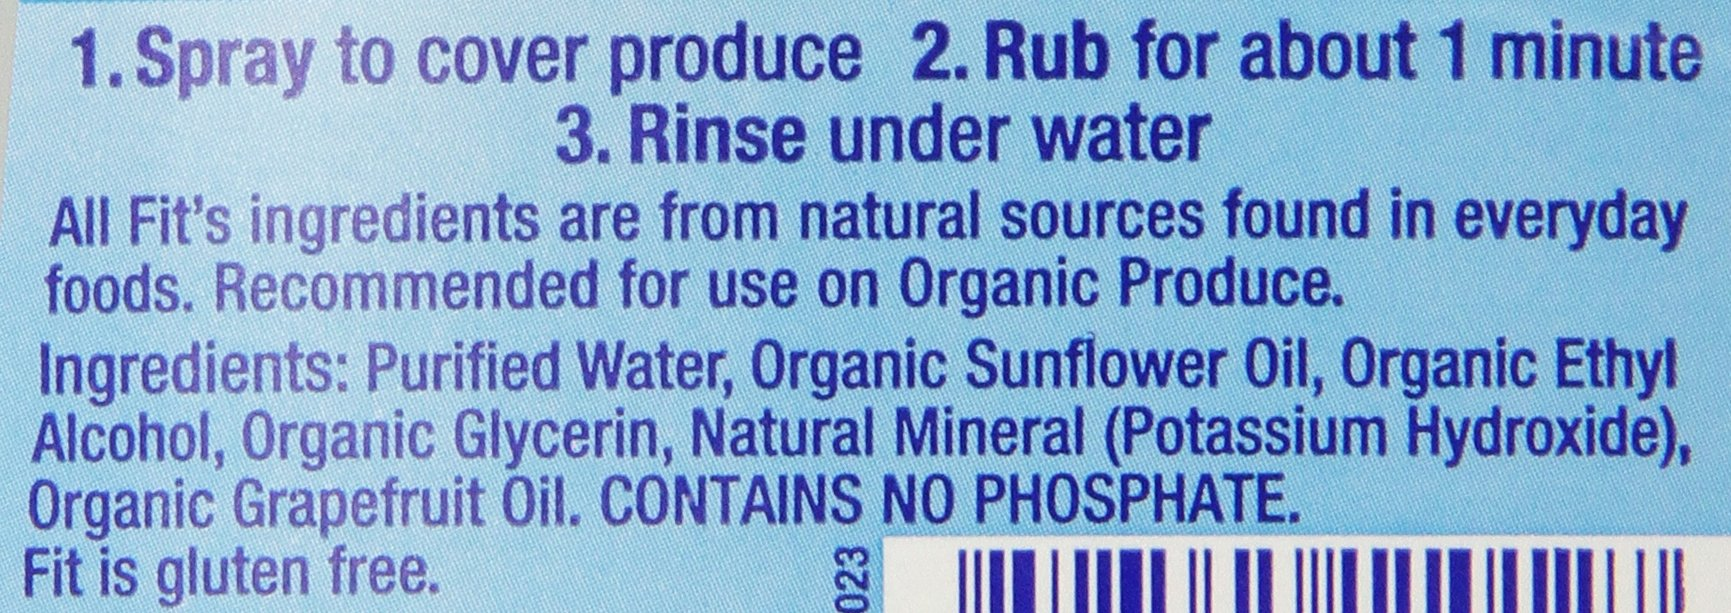 Fit Organic Produce Wash, 12 Oz Spray, Fruit and Vegetable Wash & Pesticide/Wax Remover (Pack of 6) by Fit Organic (Image #2)